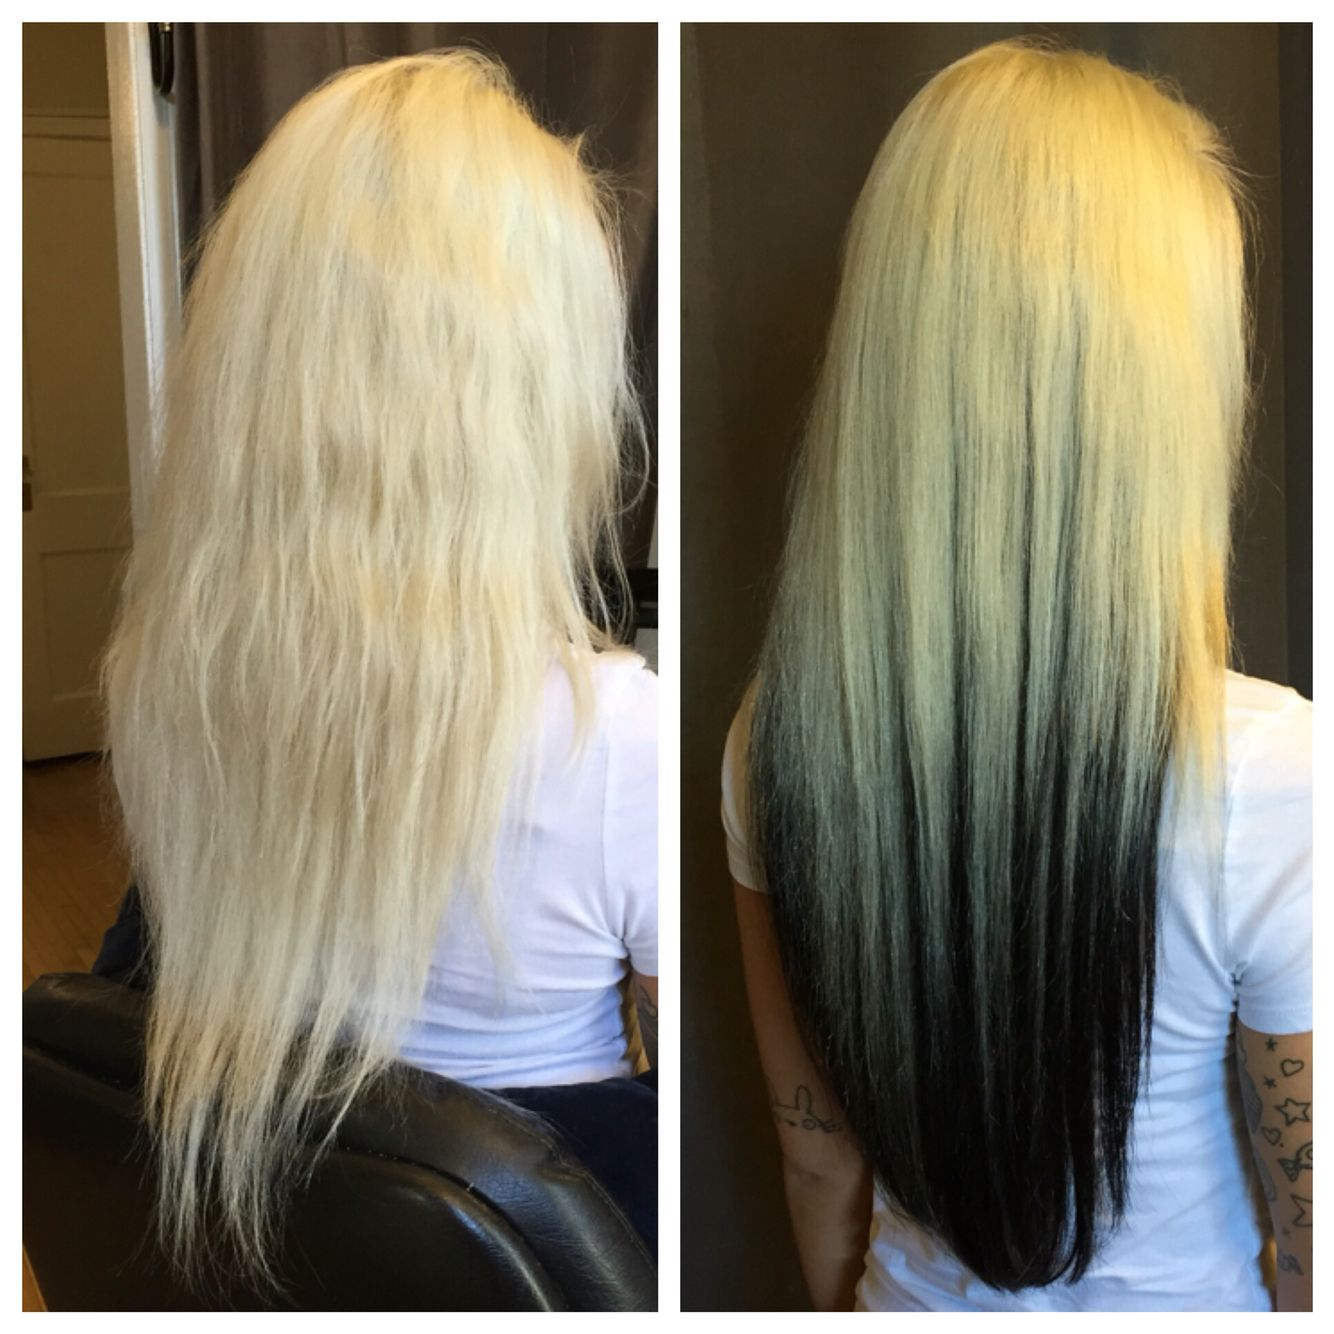 Before And After Westcoasthair Hairextensions 711 W Lake St